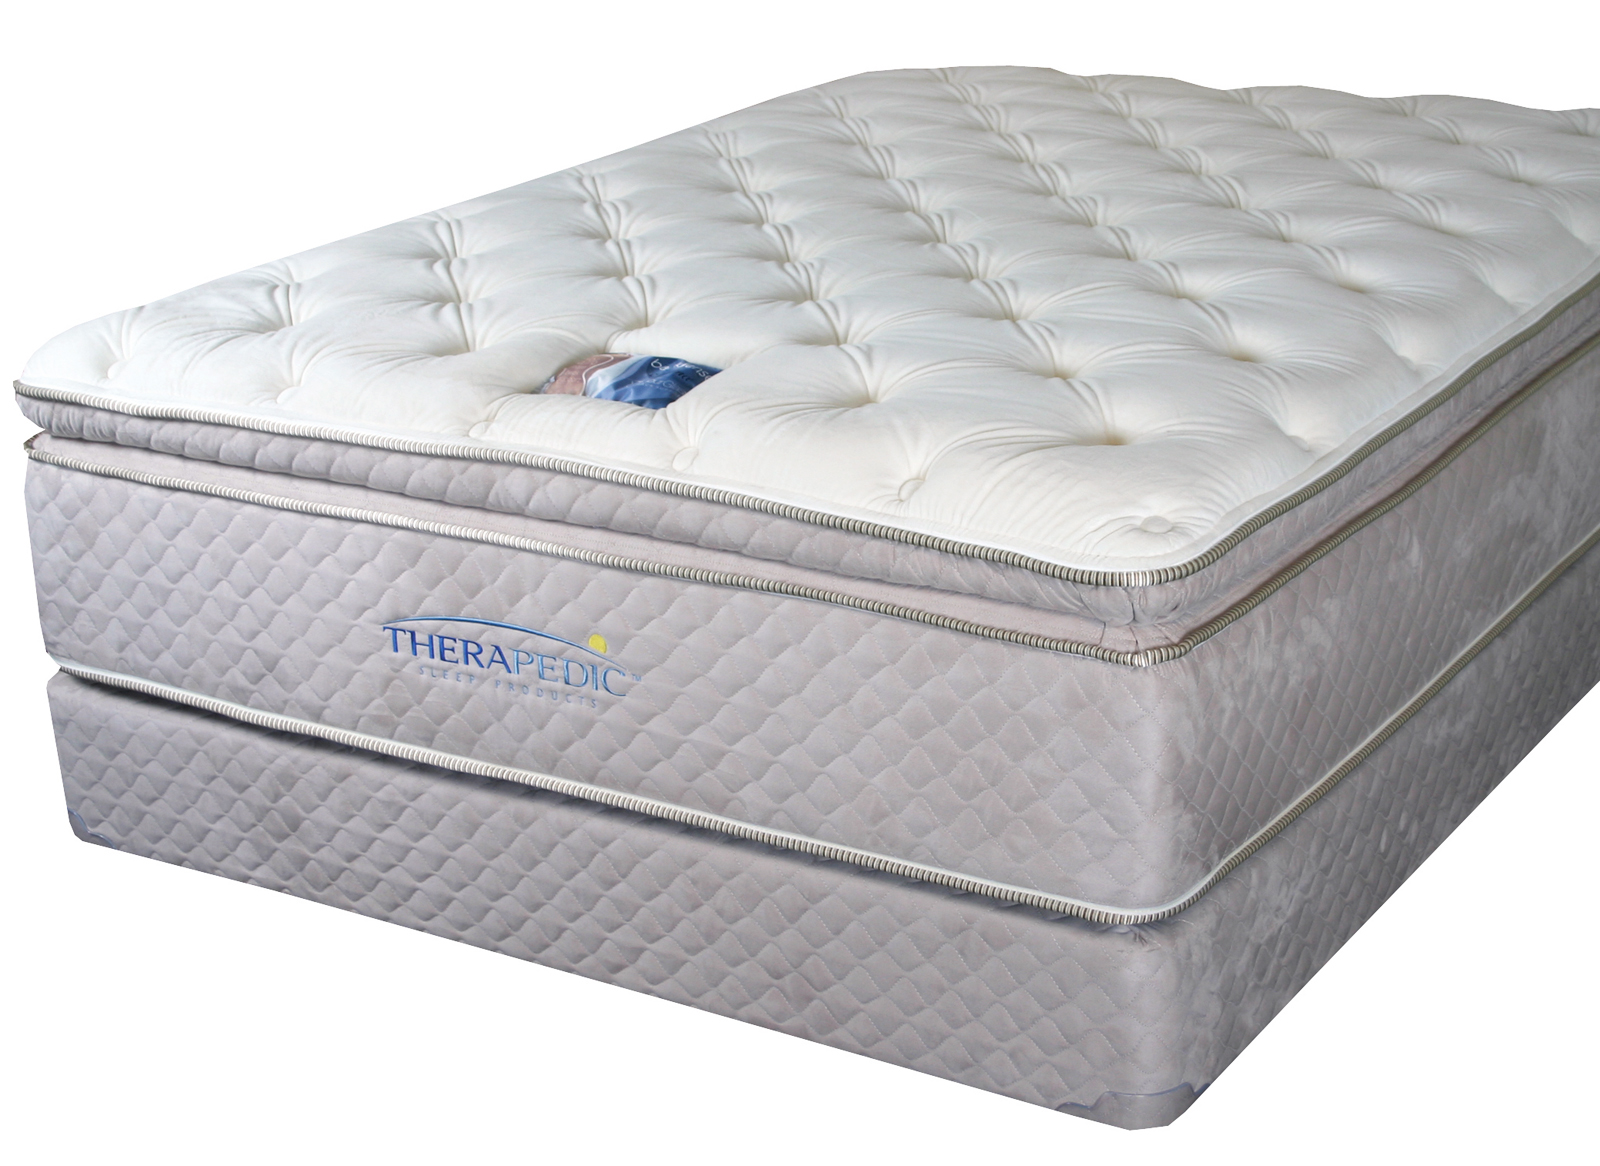 Therapedic BackSense Elite - Plush Pillow Top